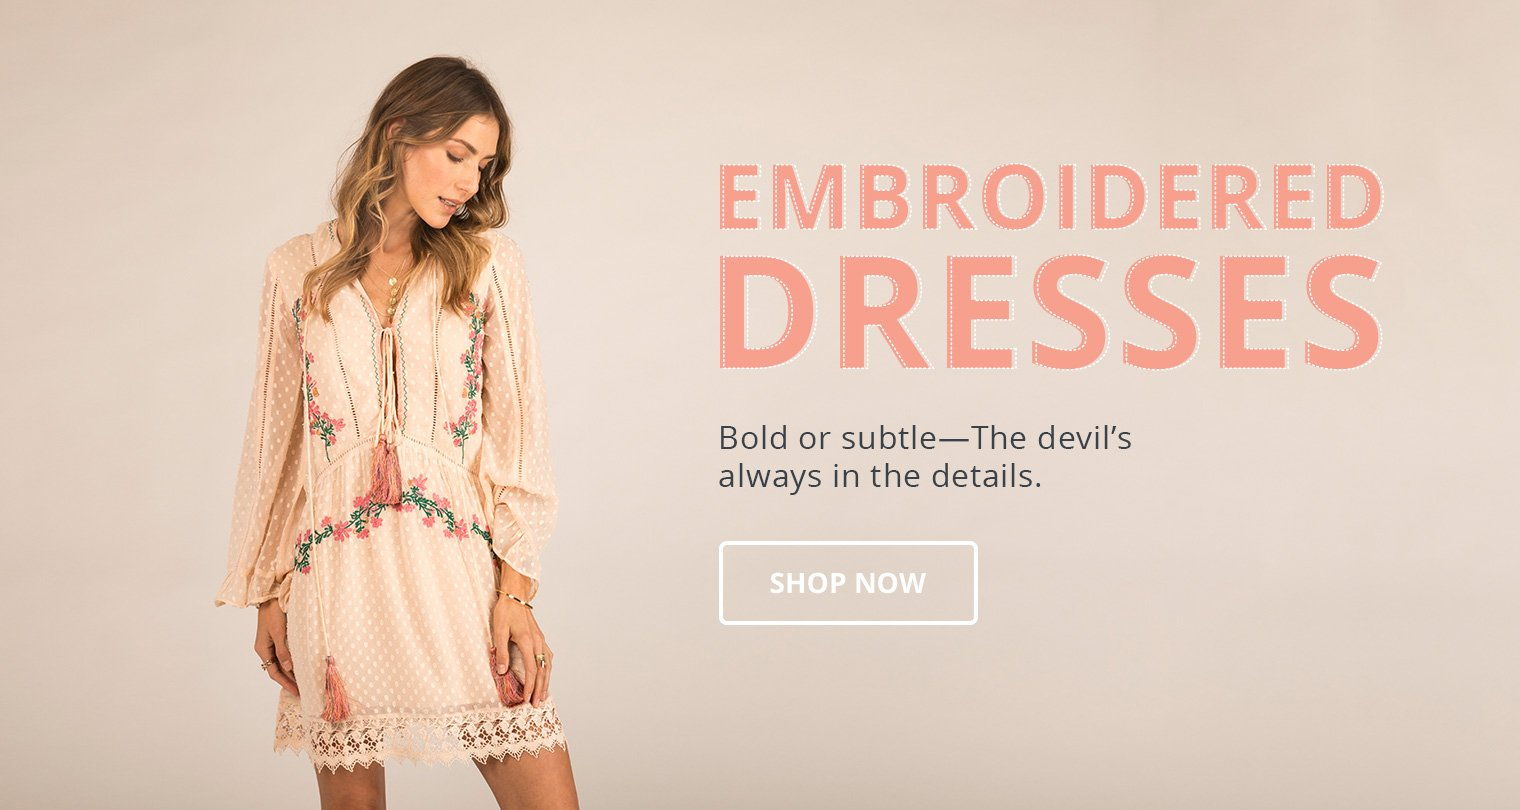 Embroidered Dresses. Bold or subtle- The devil's always in the details. Shop Now.